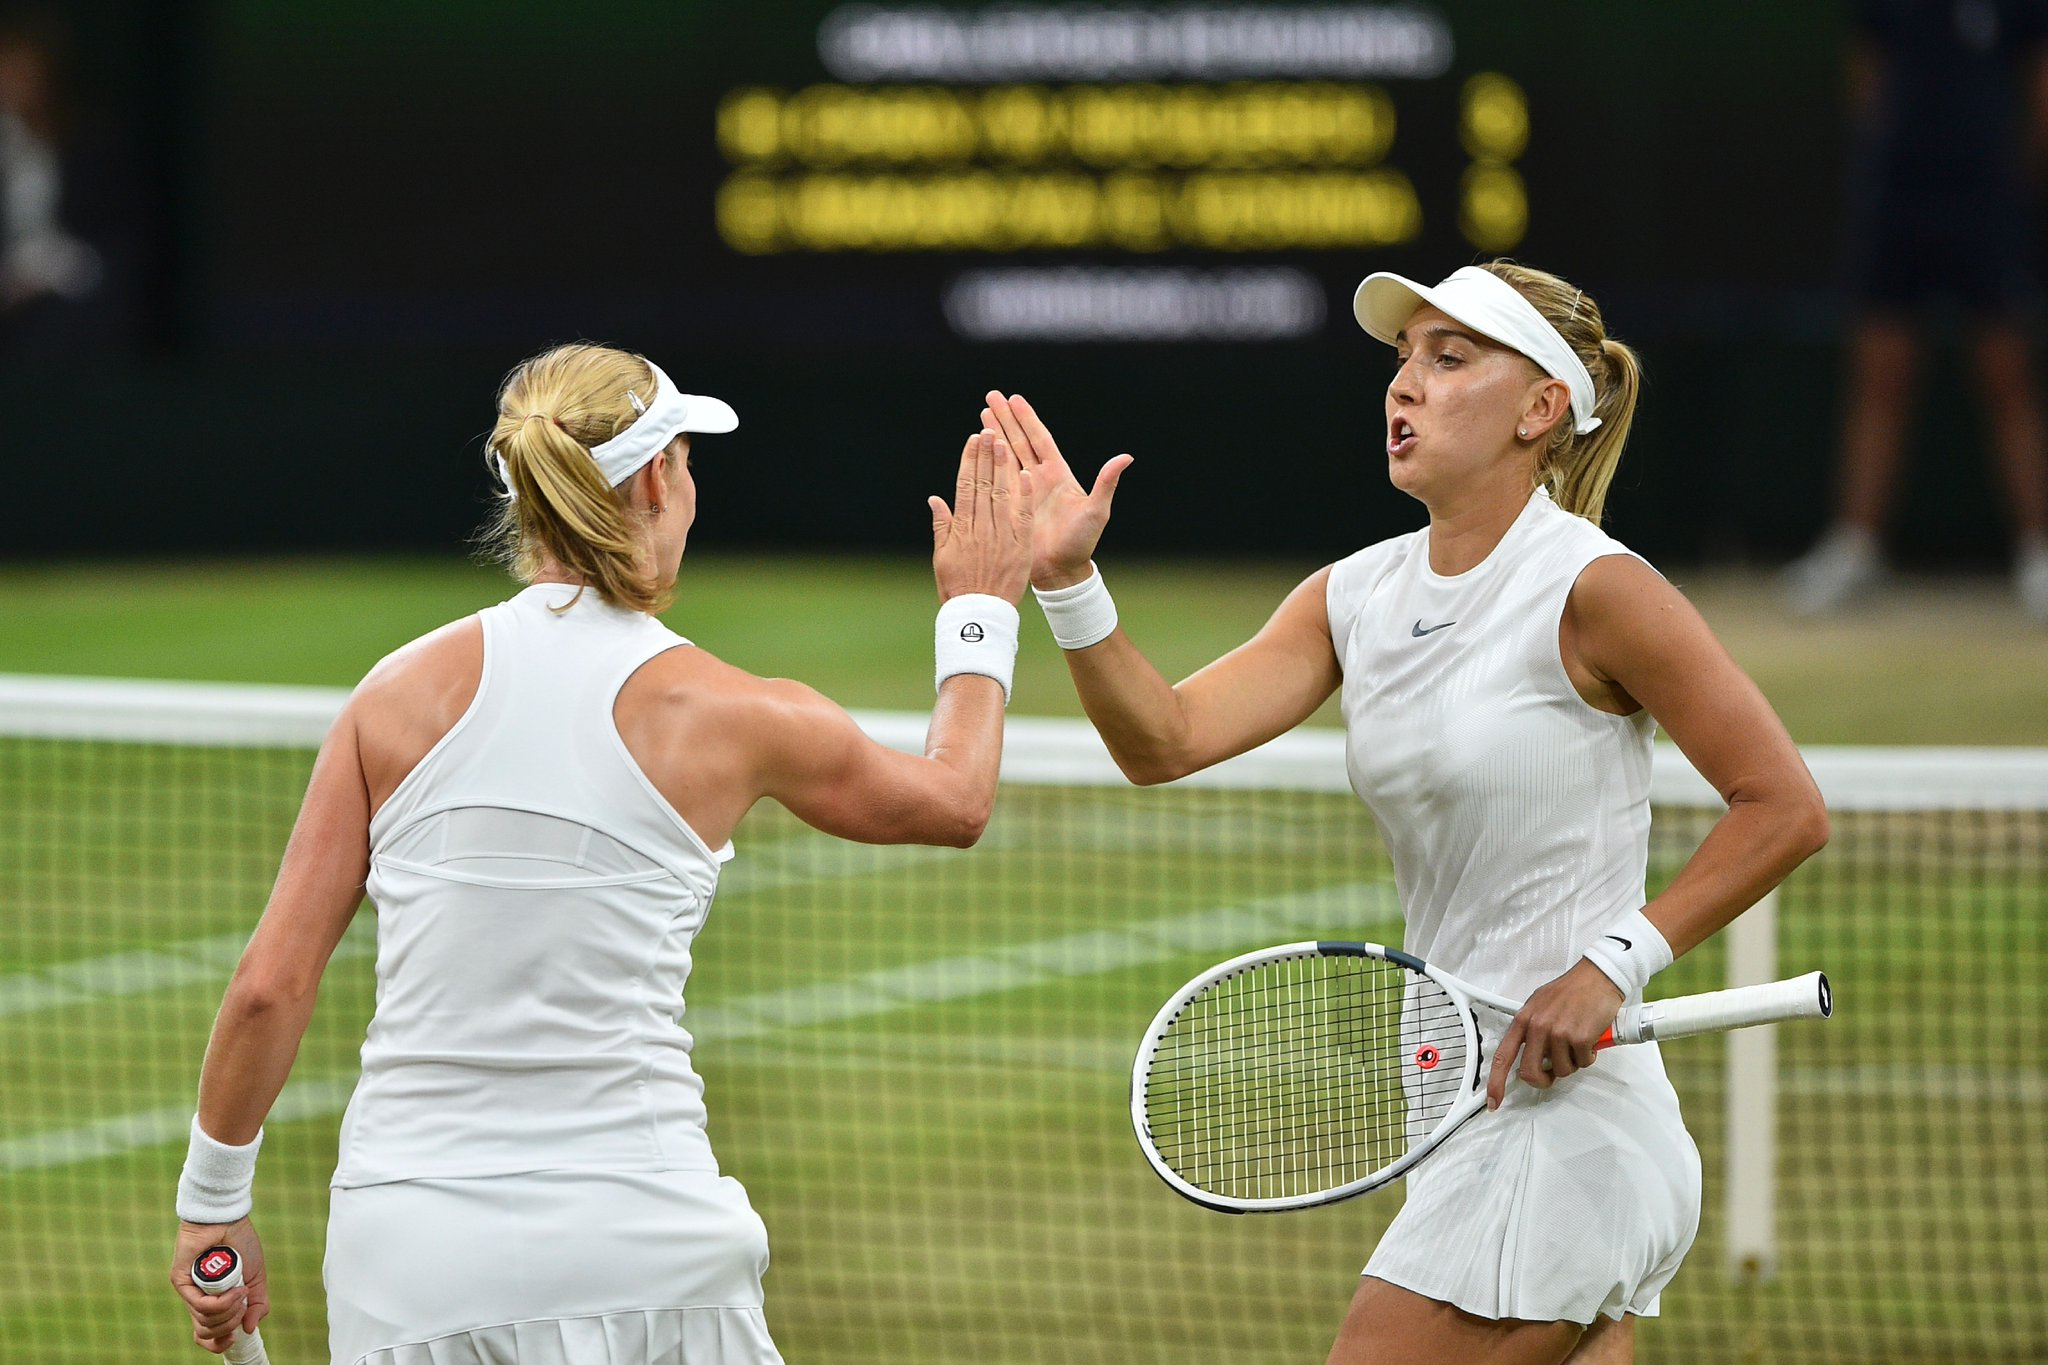 Make that 5-0.  Makarova and Vesnina are on a roll.  �� @BBCTwo  �� https://t.co/jiUsK2EKJG #Wimbledon #bbctennis https://t.co/hlQVEQymzv